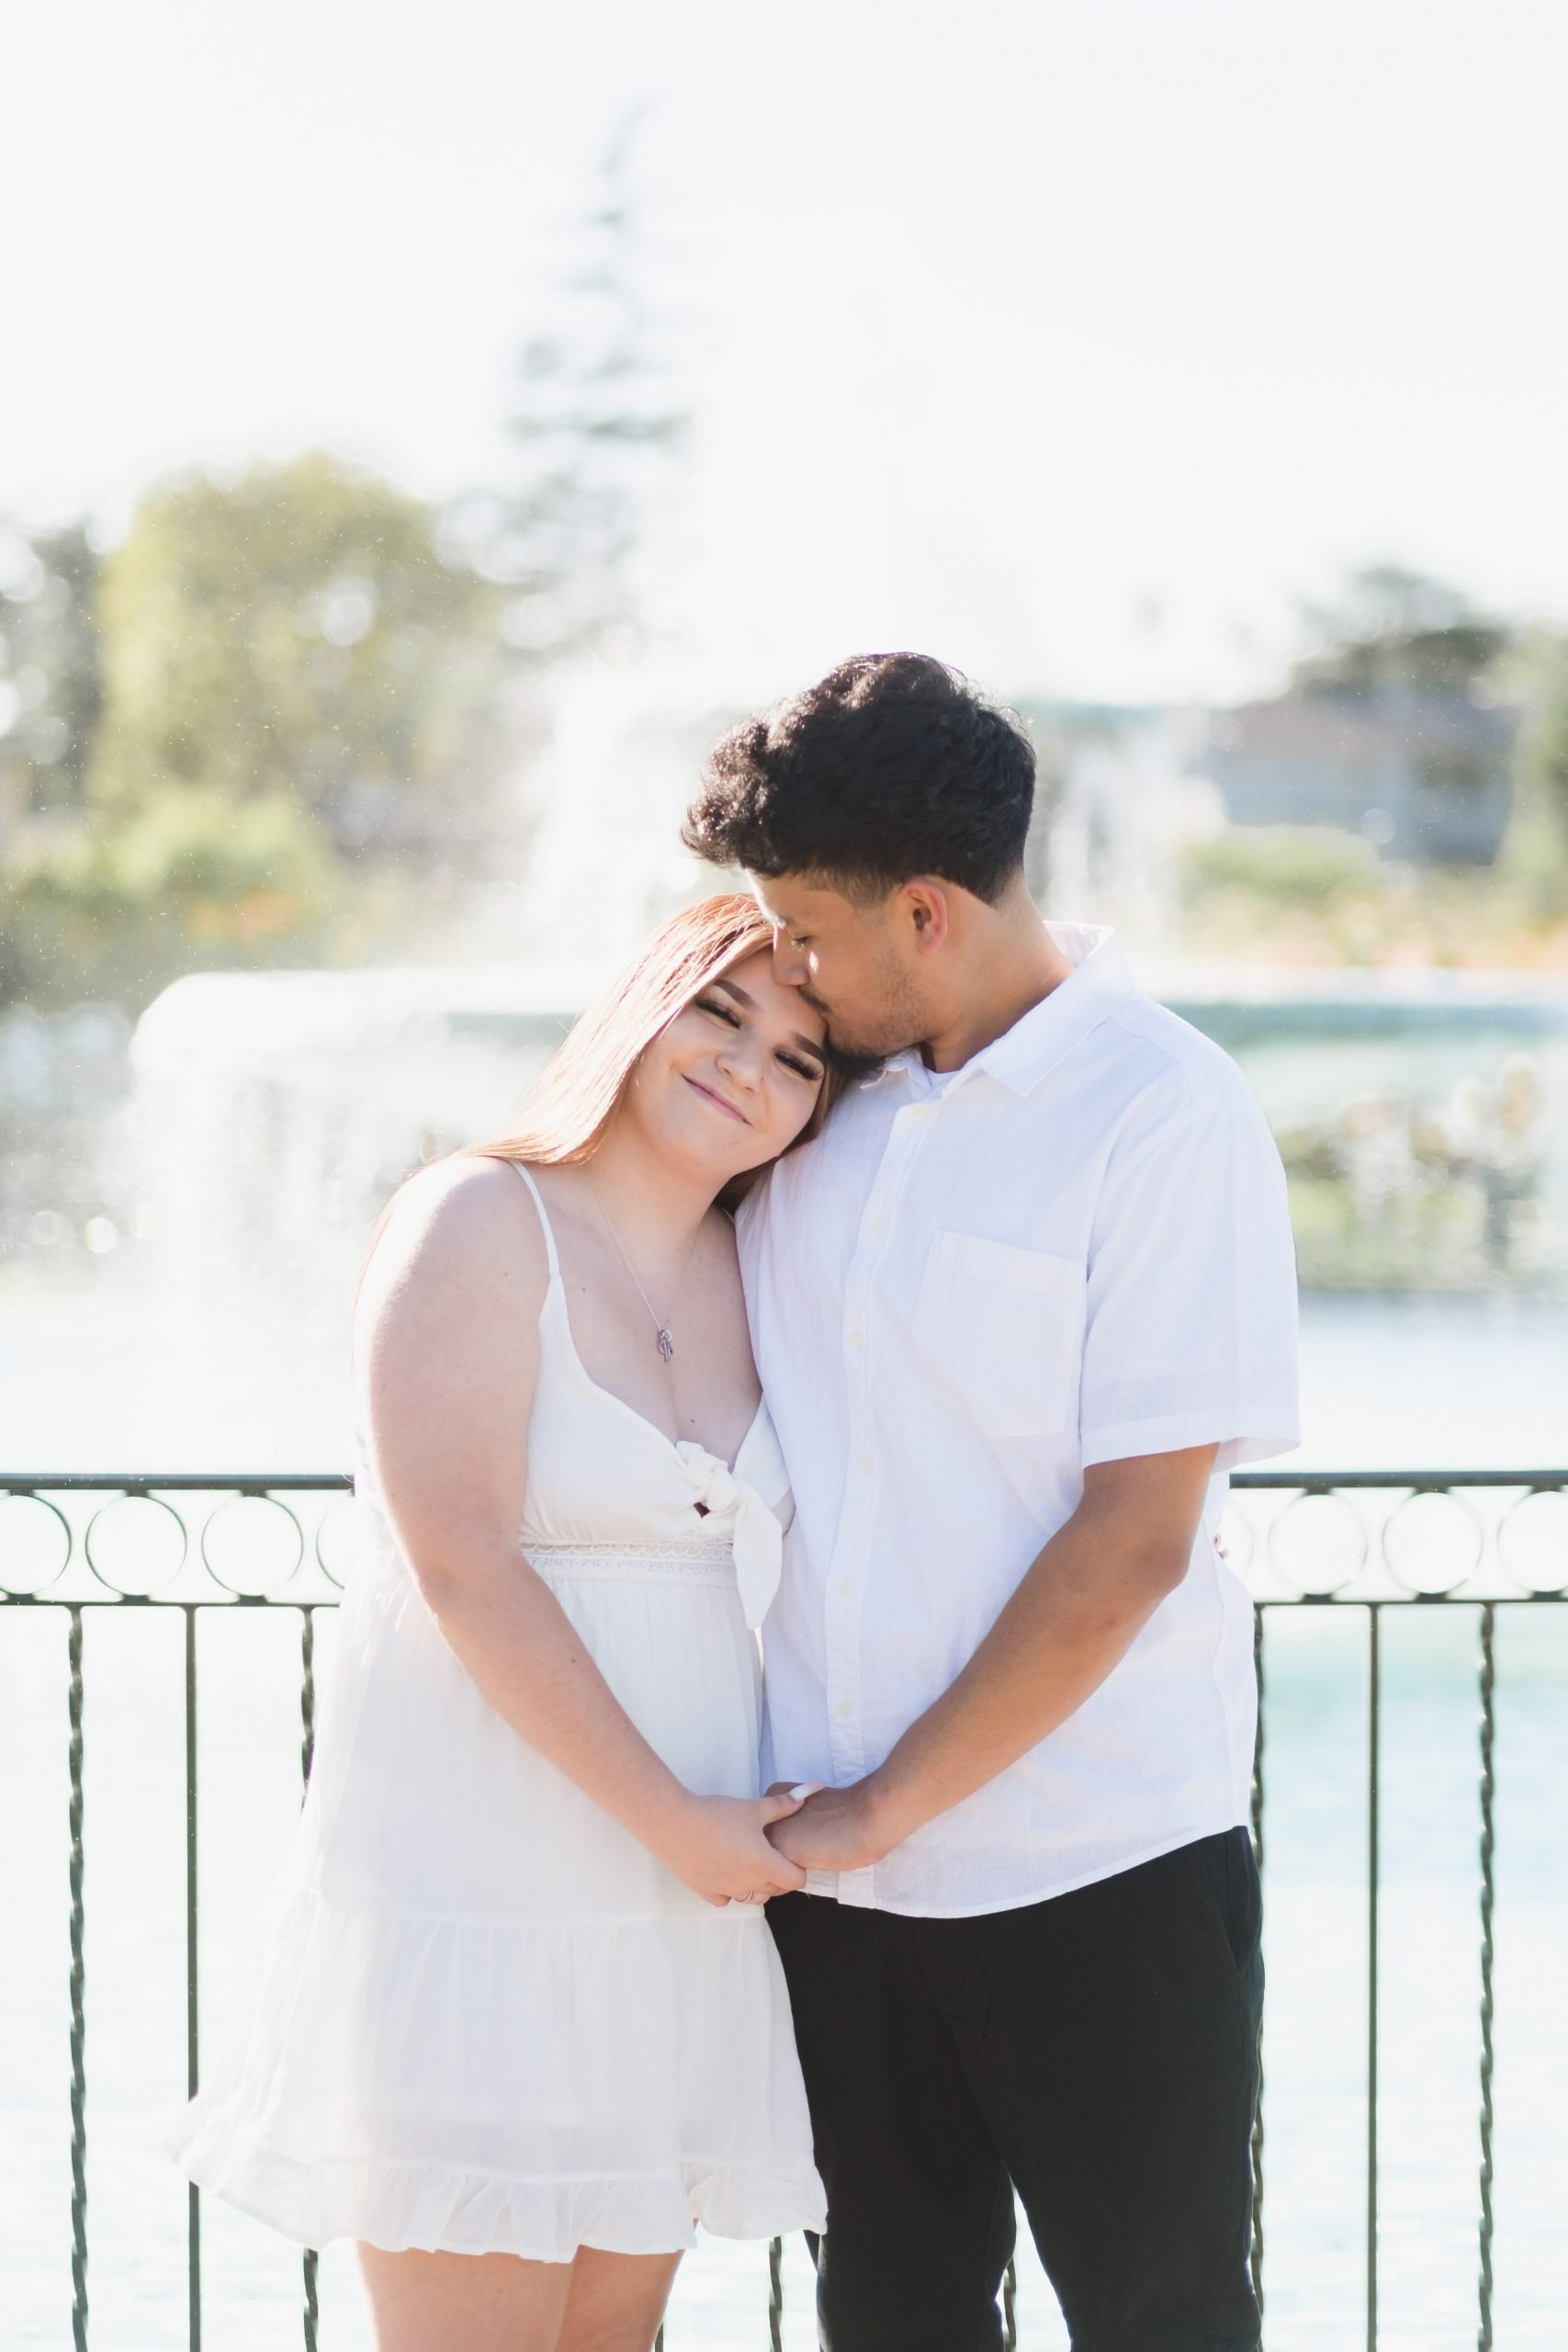 boyfriend and girlfriend hugging in front of fountain